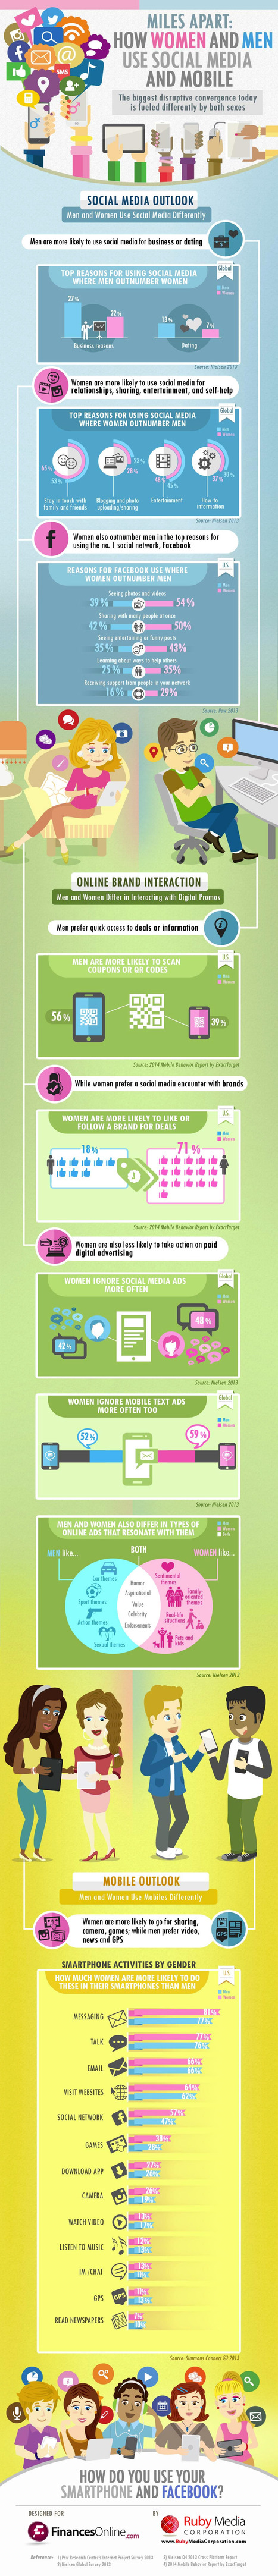 Smartphone and Social Media Usage: Men vs. Women (Infographic) | Social Media & Its Influence | Scoop.it